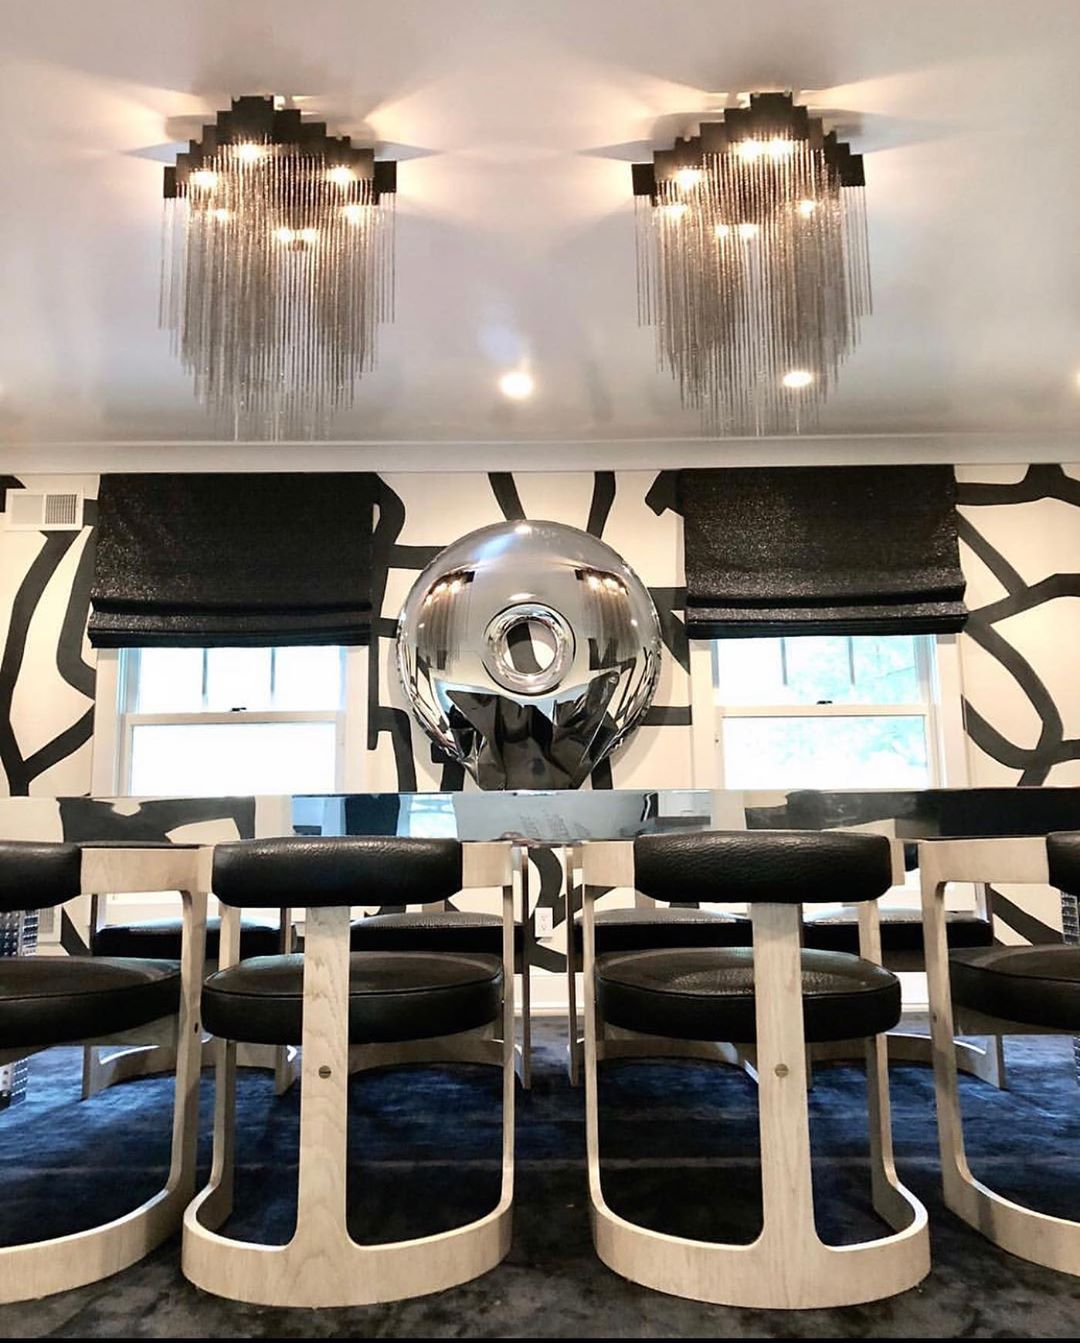 "MELANIE MORRIS INTERIORS on Instagram: ""MMI • Dining room designed by @melaniemorrisinteriors ••• . . . . #mmi #diningroomdecor #diningroomdesign #resintable #gabrielscott…"""